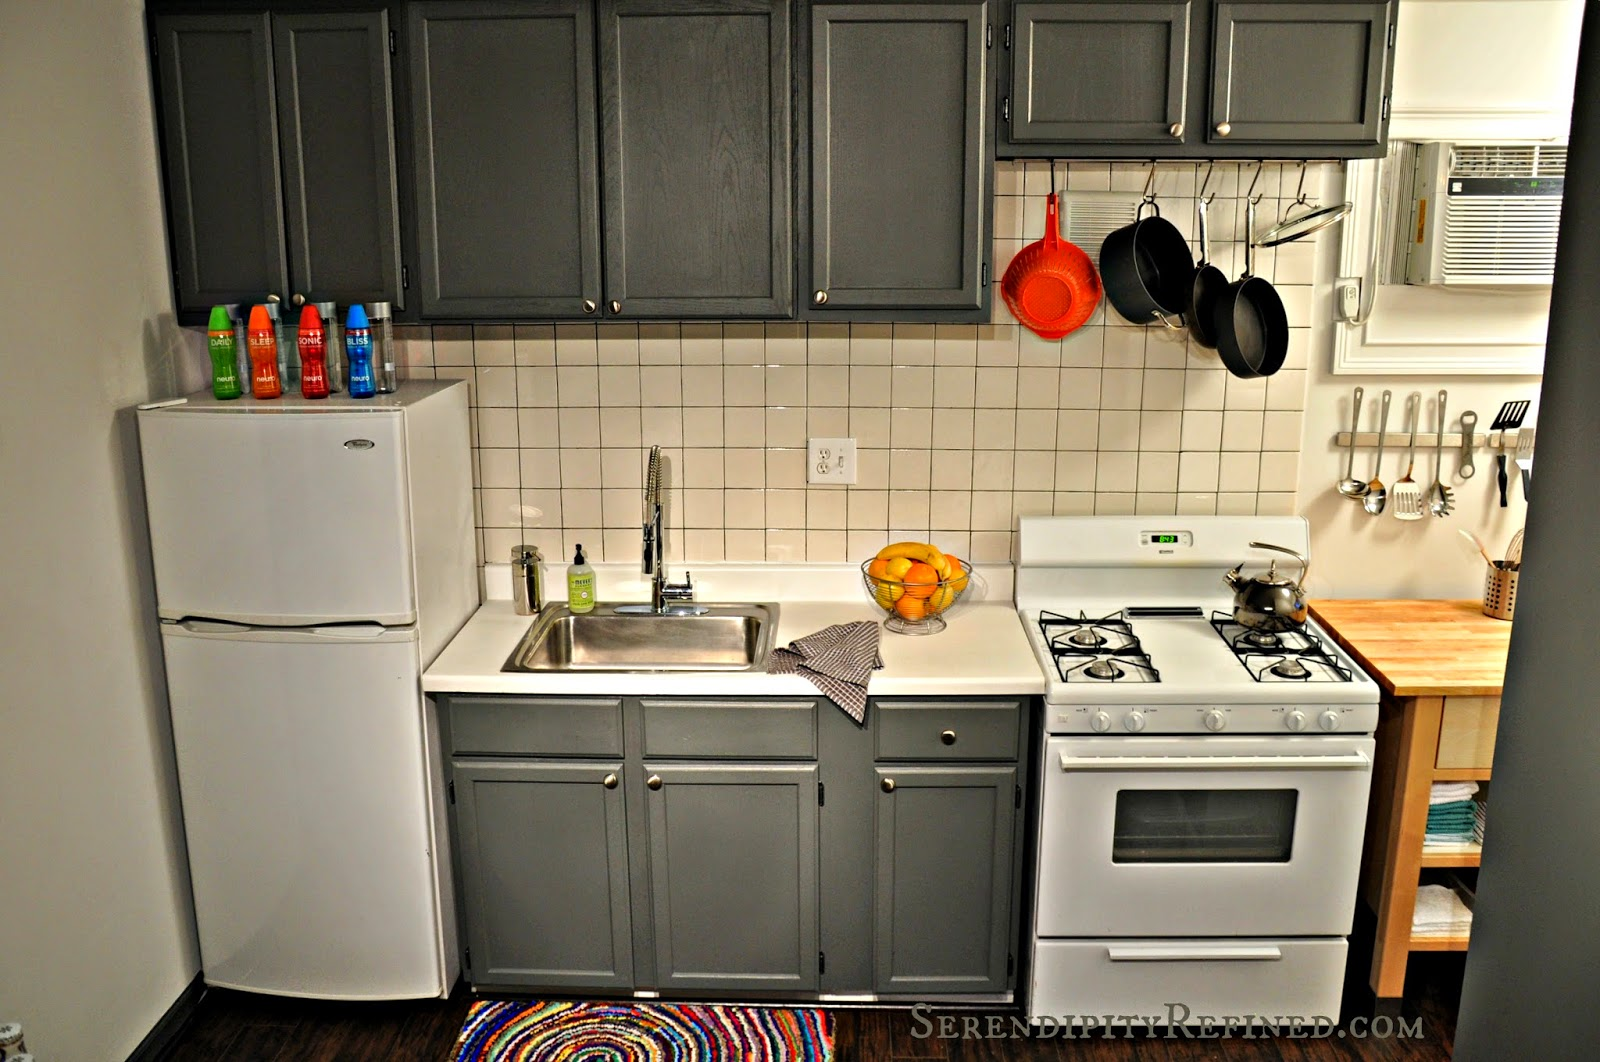 Diy kitchen makeover pthyd for Kitchen design diy